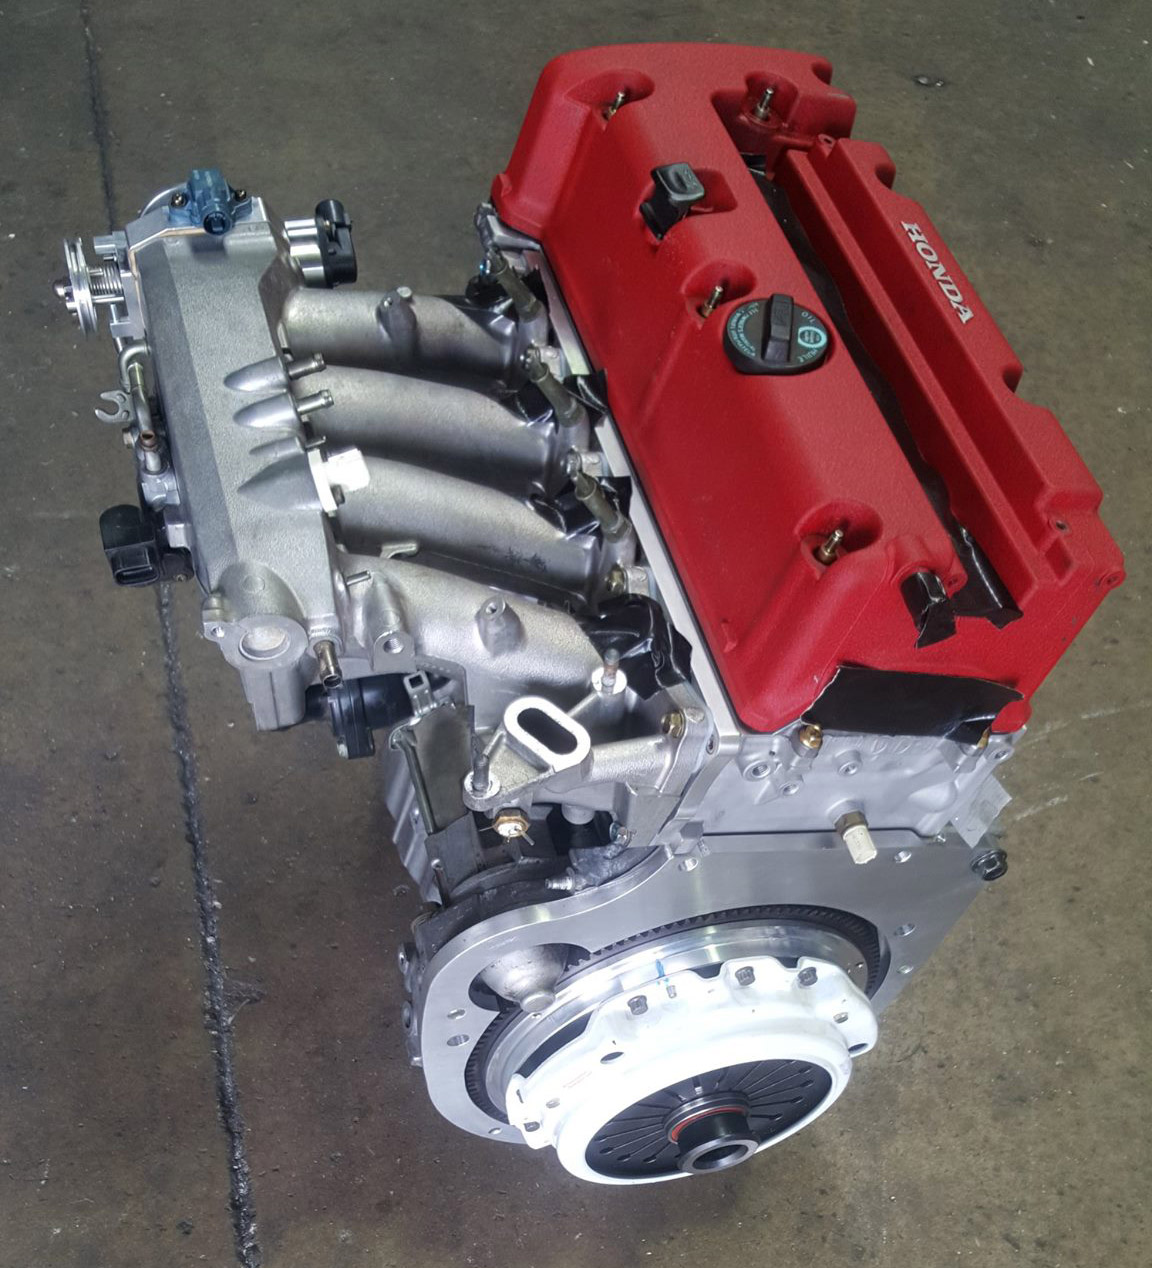 Rx7 Engine Is: Mazda RX-7 With A Turbo K20